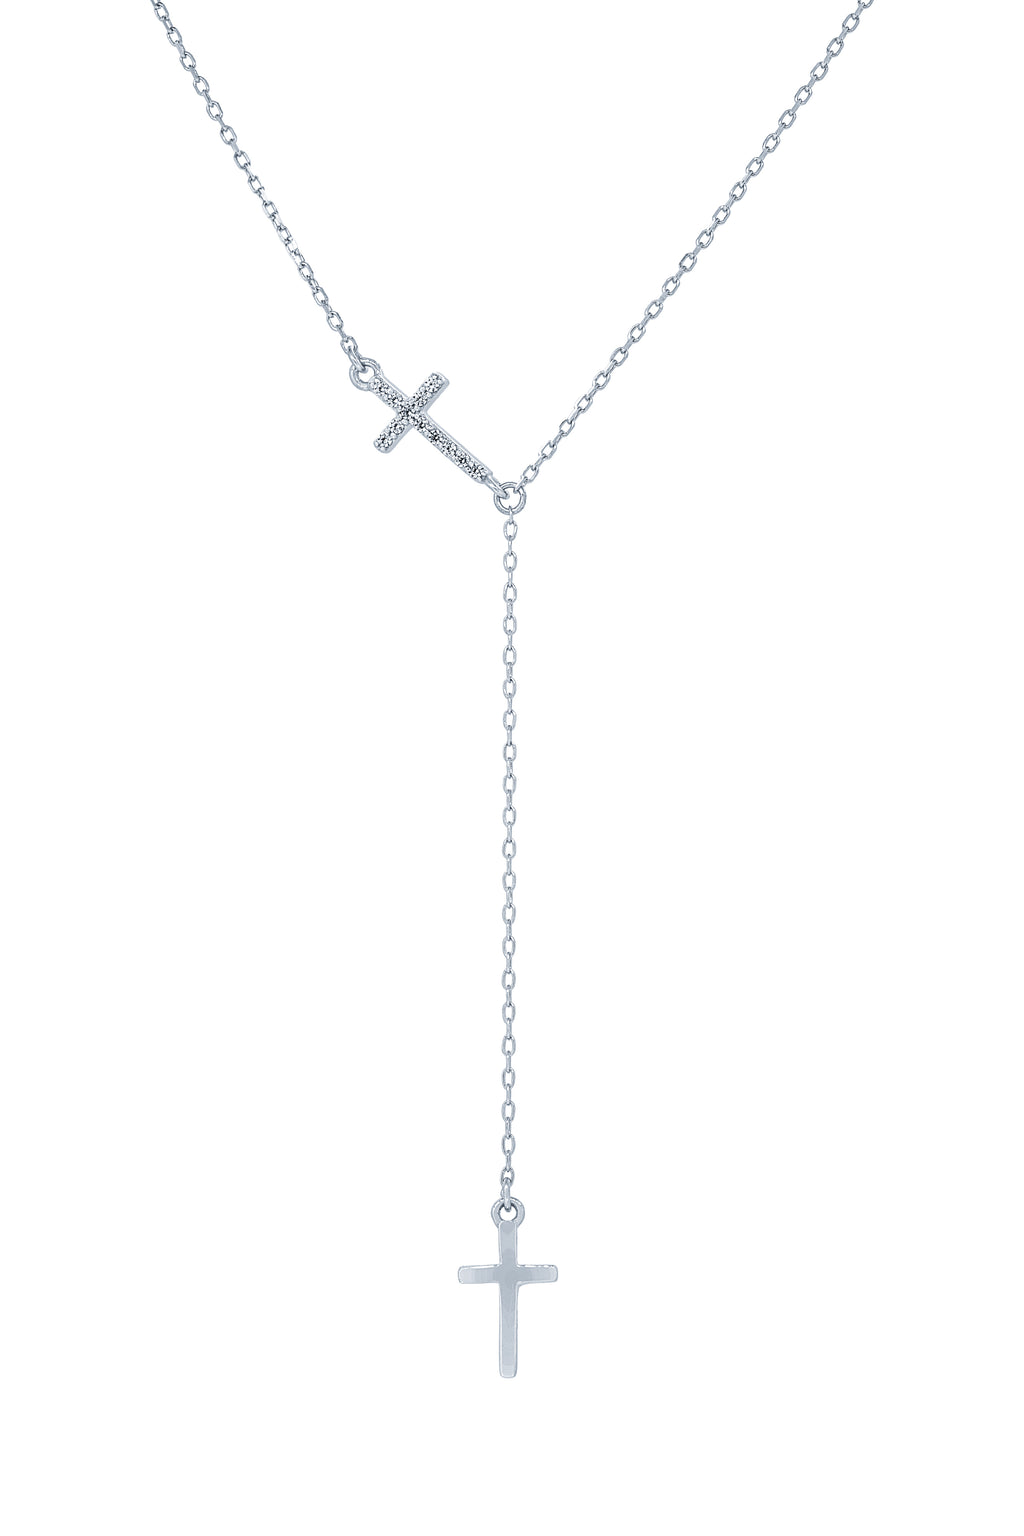 (100071) White Cubic Zirconia Cross Necklace In Sterling Silver